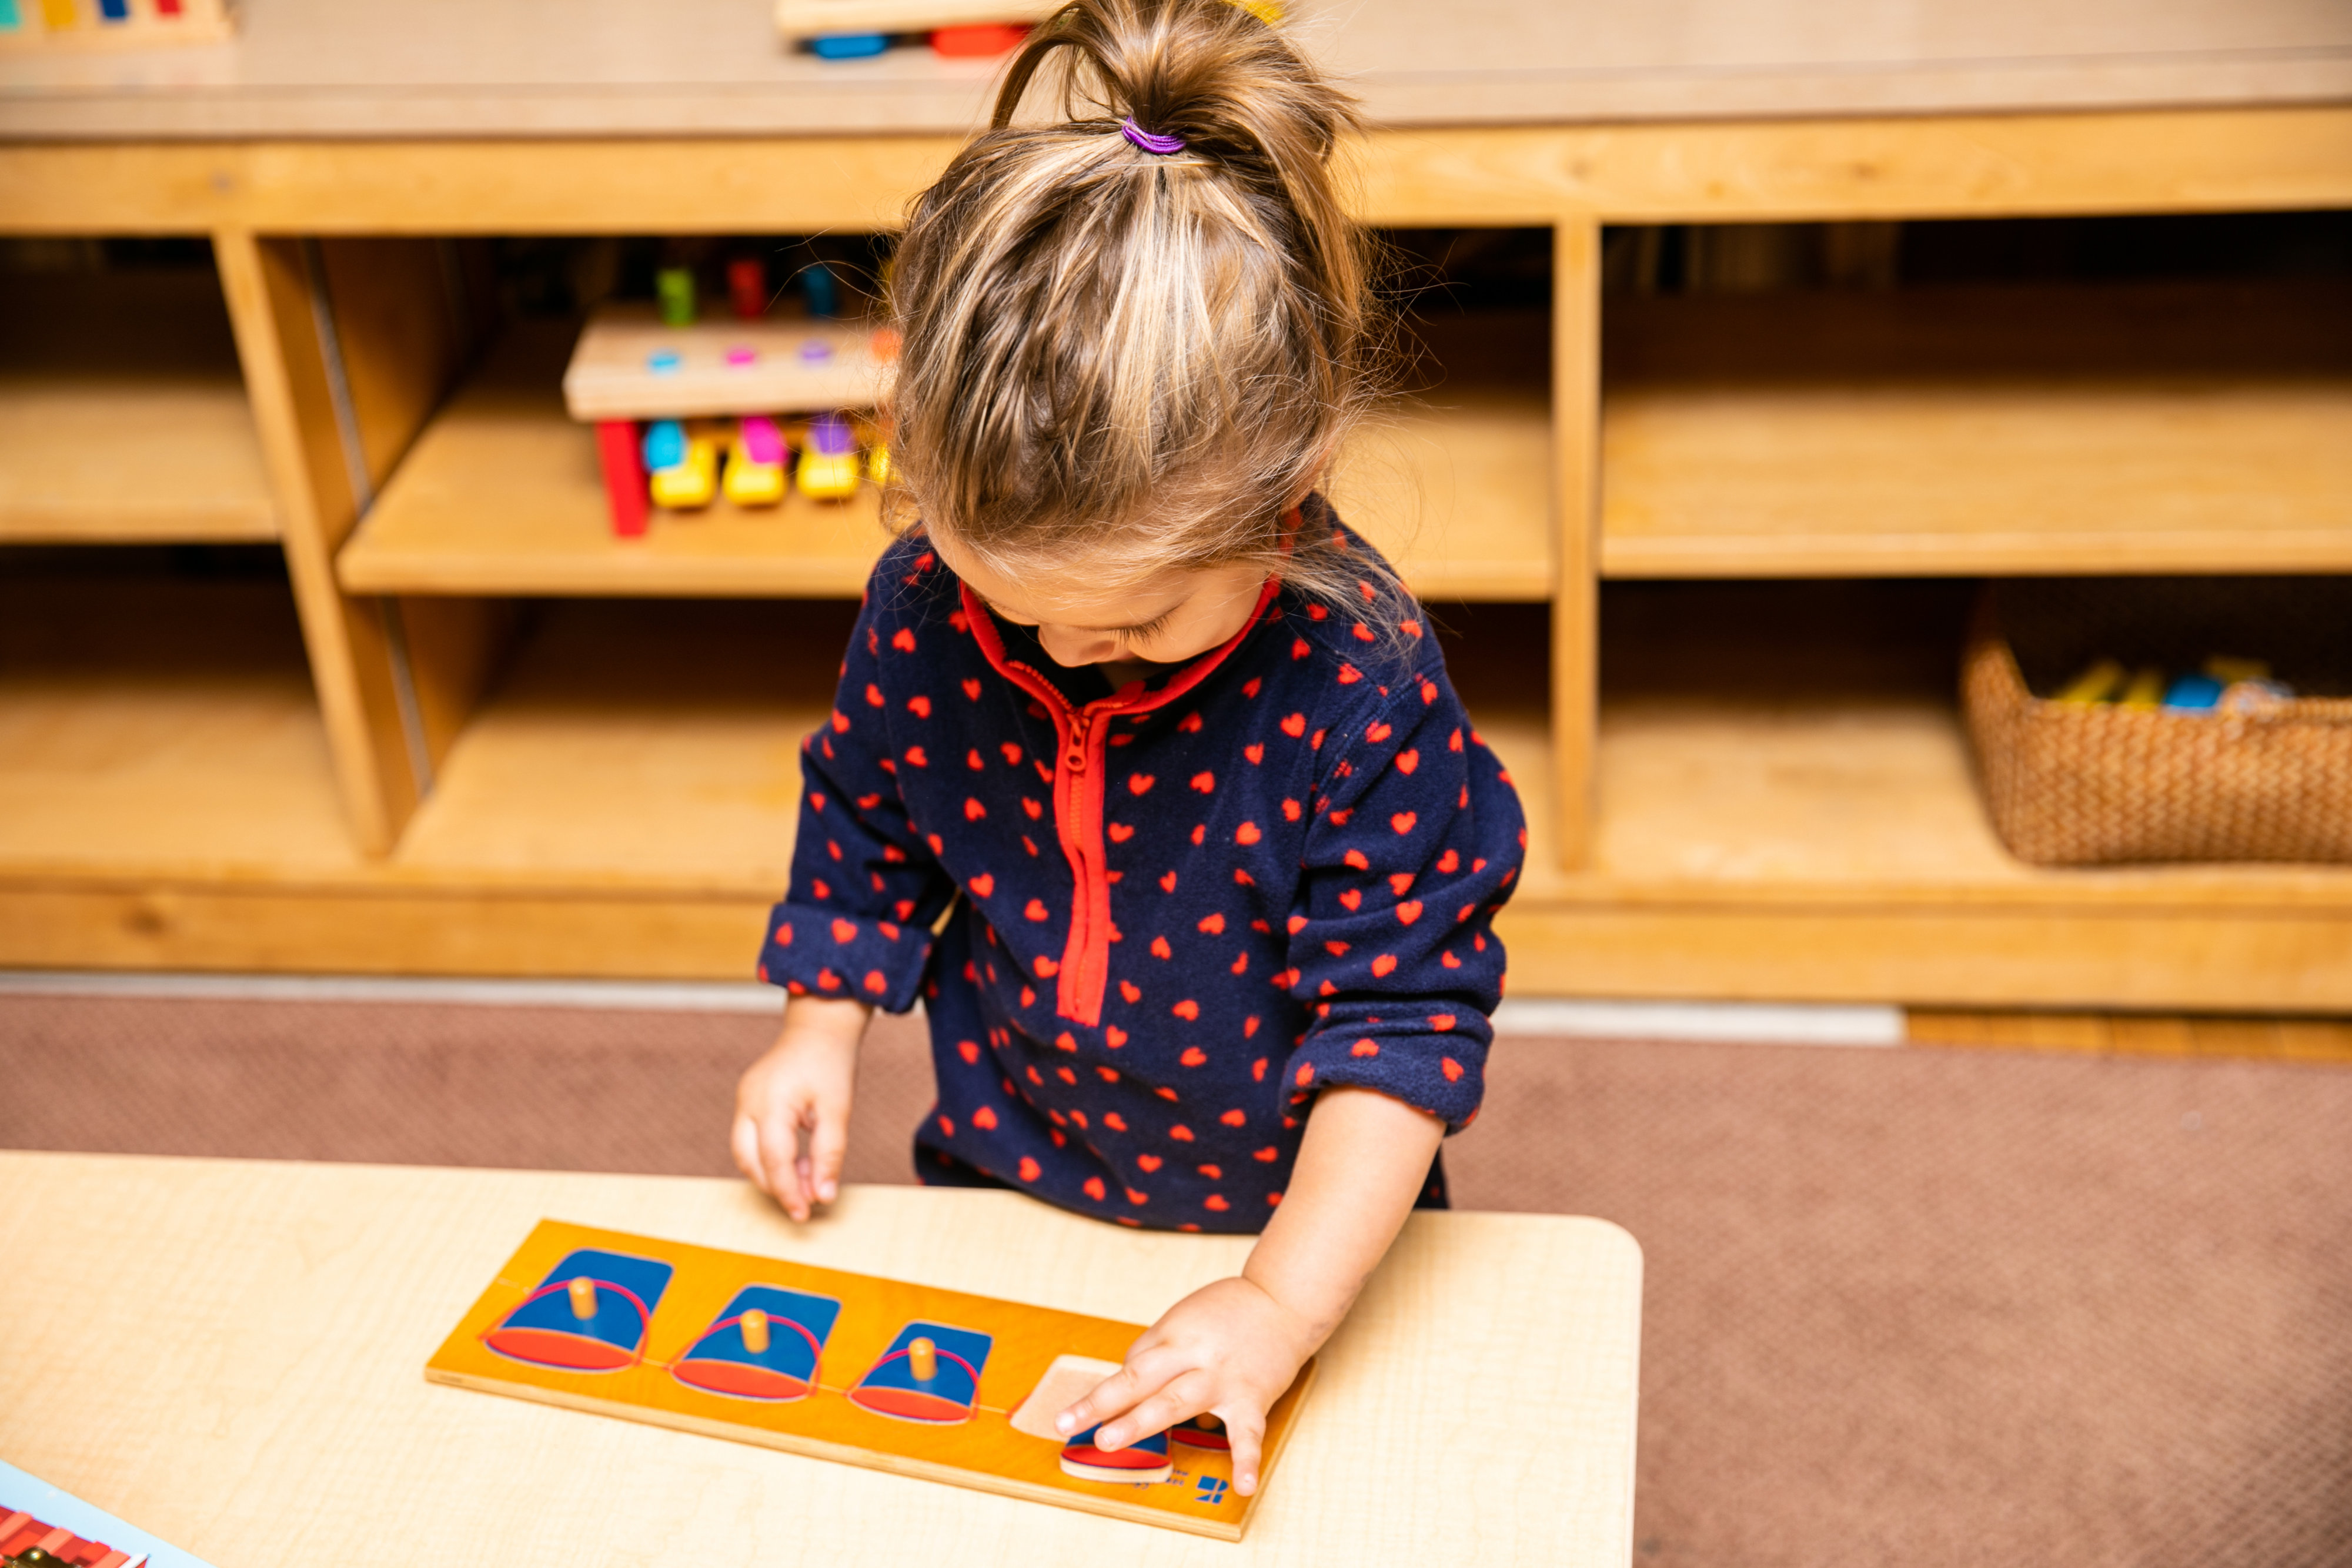 Girl using Montessori materials